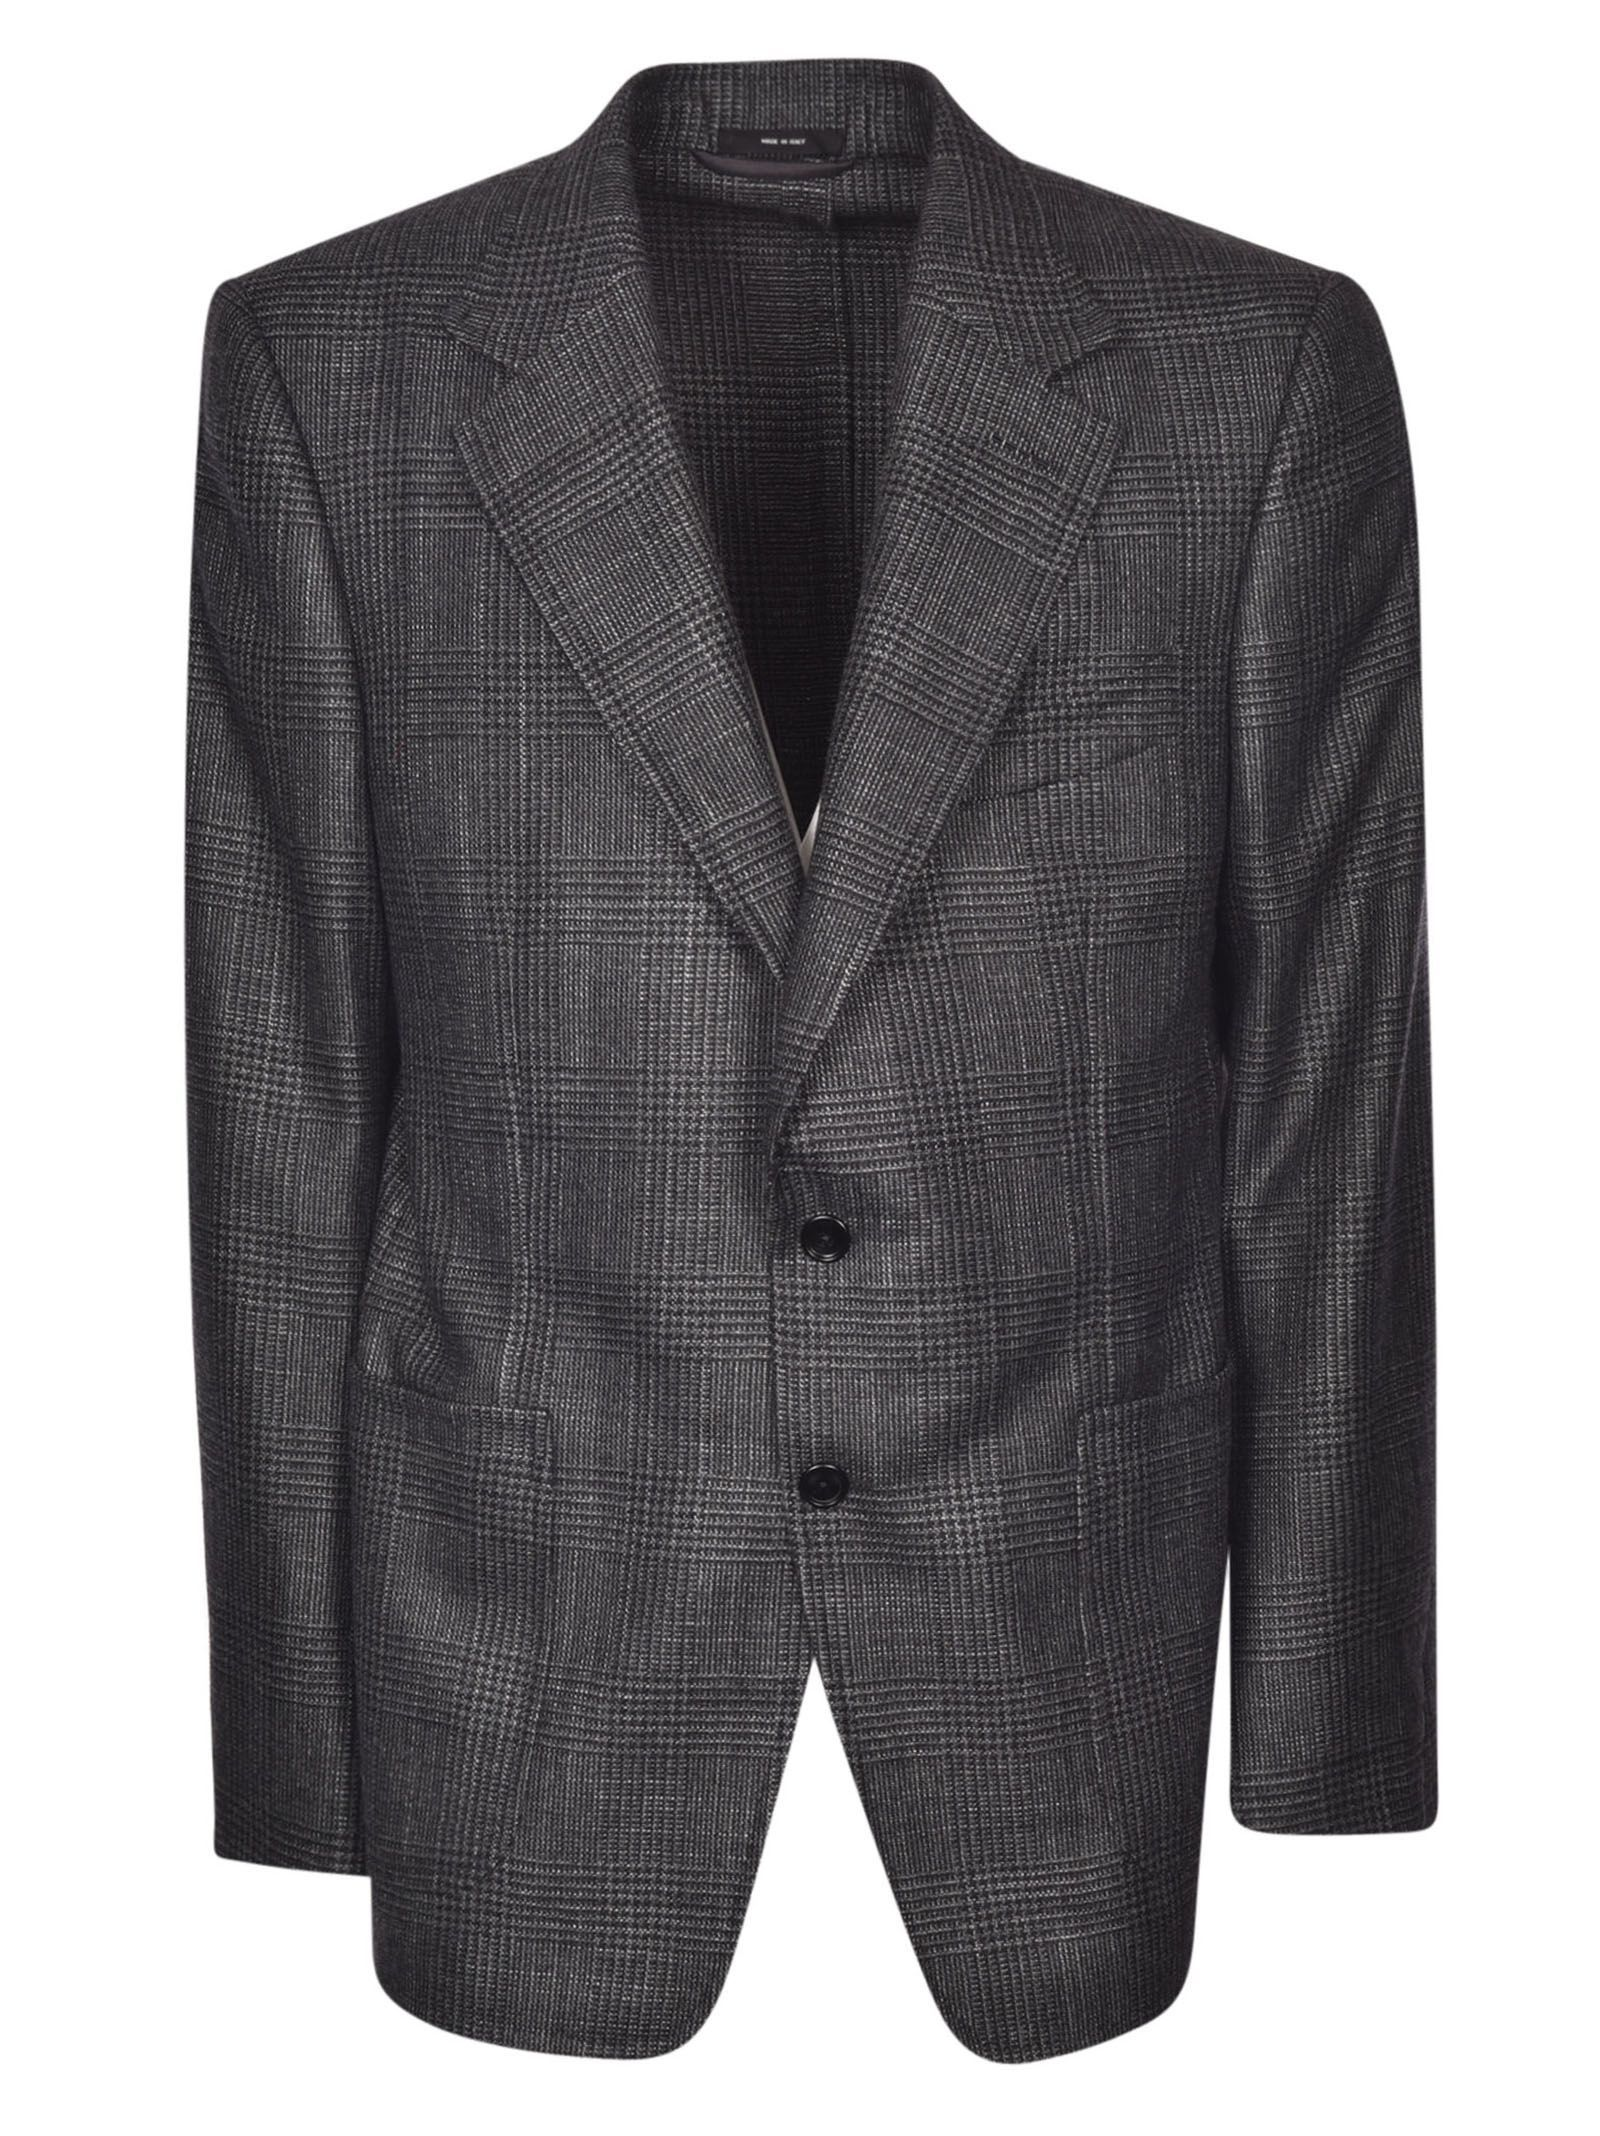 249a086443 TOM FORD PATTERNED BLAZER.  tomford  cloth